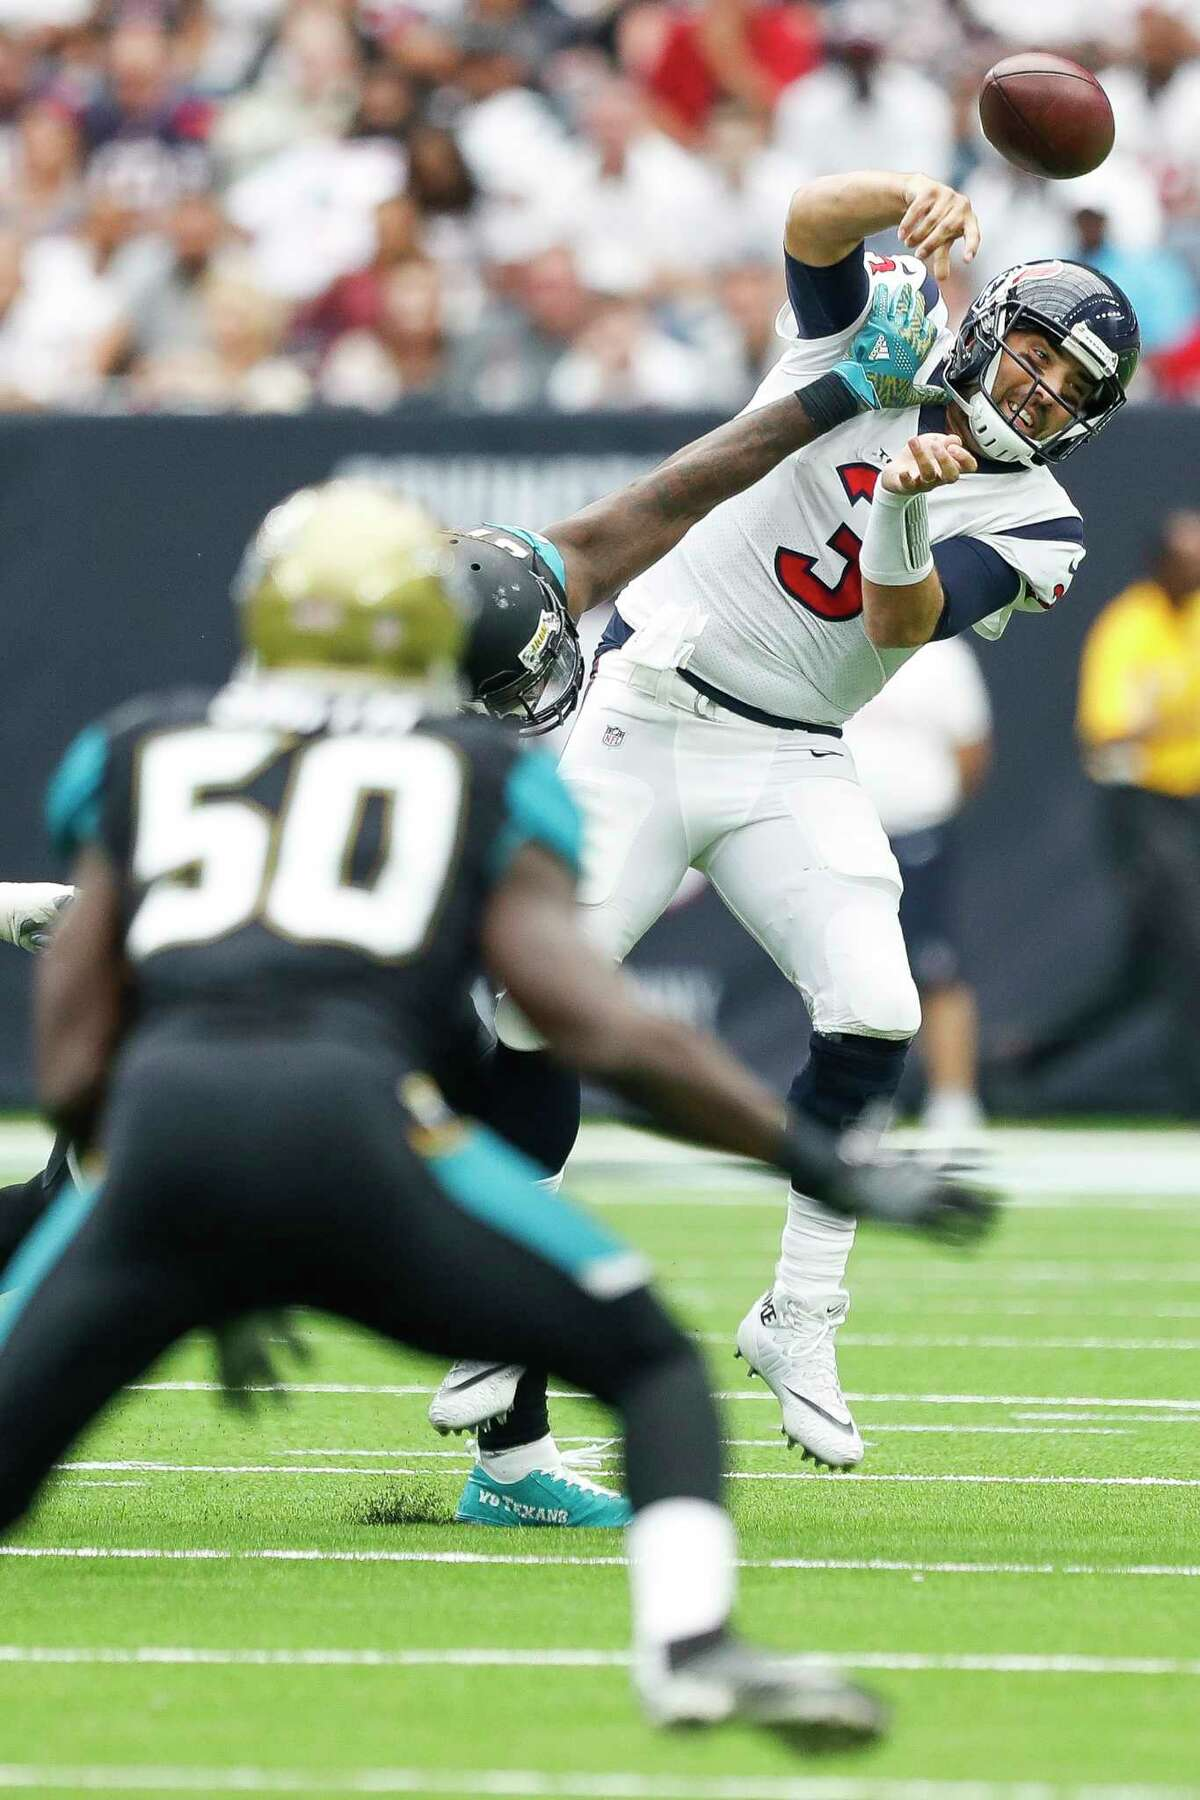 Houston Texans quarterback Tom Savage (3) is hit while making a pass in the second quarter of an NFL football game at NRG Stadium, Sunday, Sept. 10, 2017, in Houston.